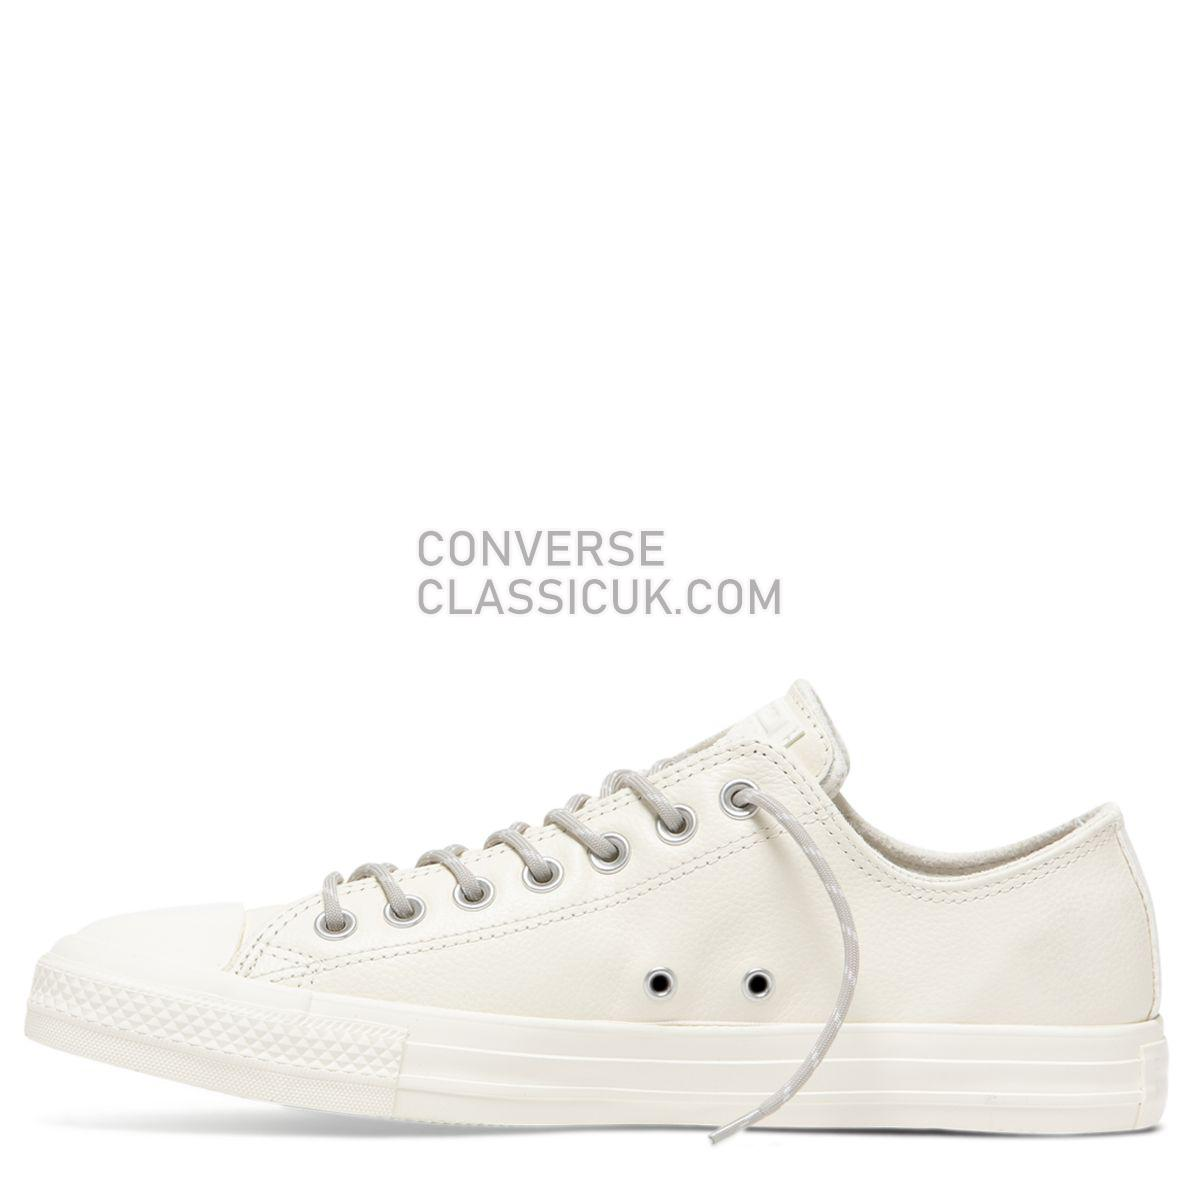 Converse Chuck Taylor All Star Limo Leather Low Top Egret Mens Womens Unisex 163342 Egret/Papyrus/Egret Shoes